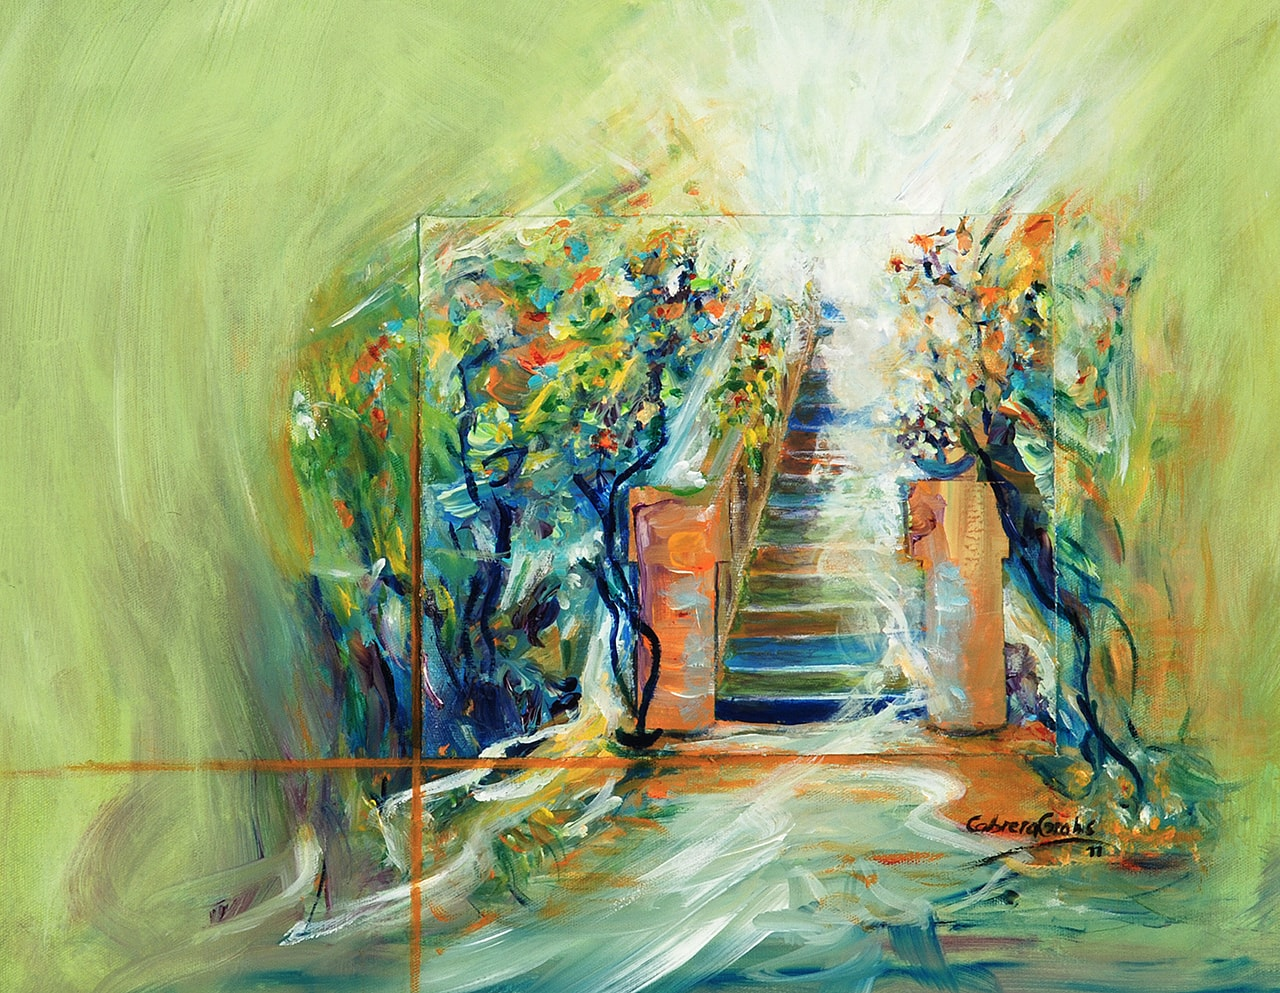 Abstract original paintings on canvas decorative sale buy contemporanean